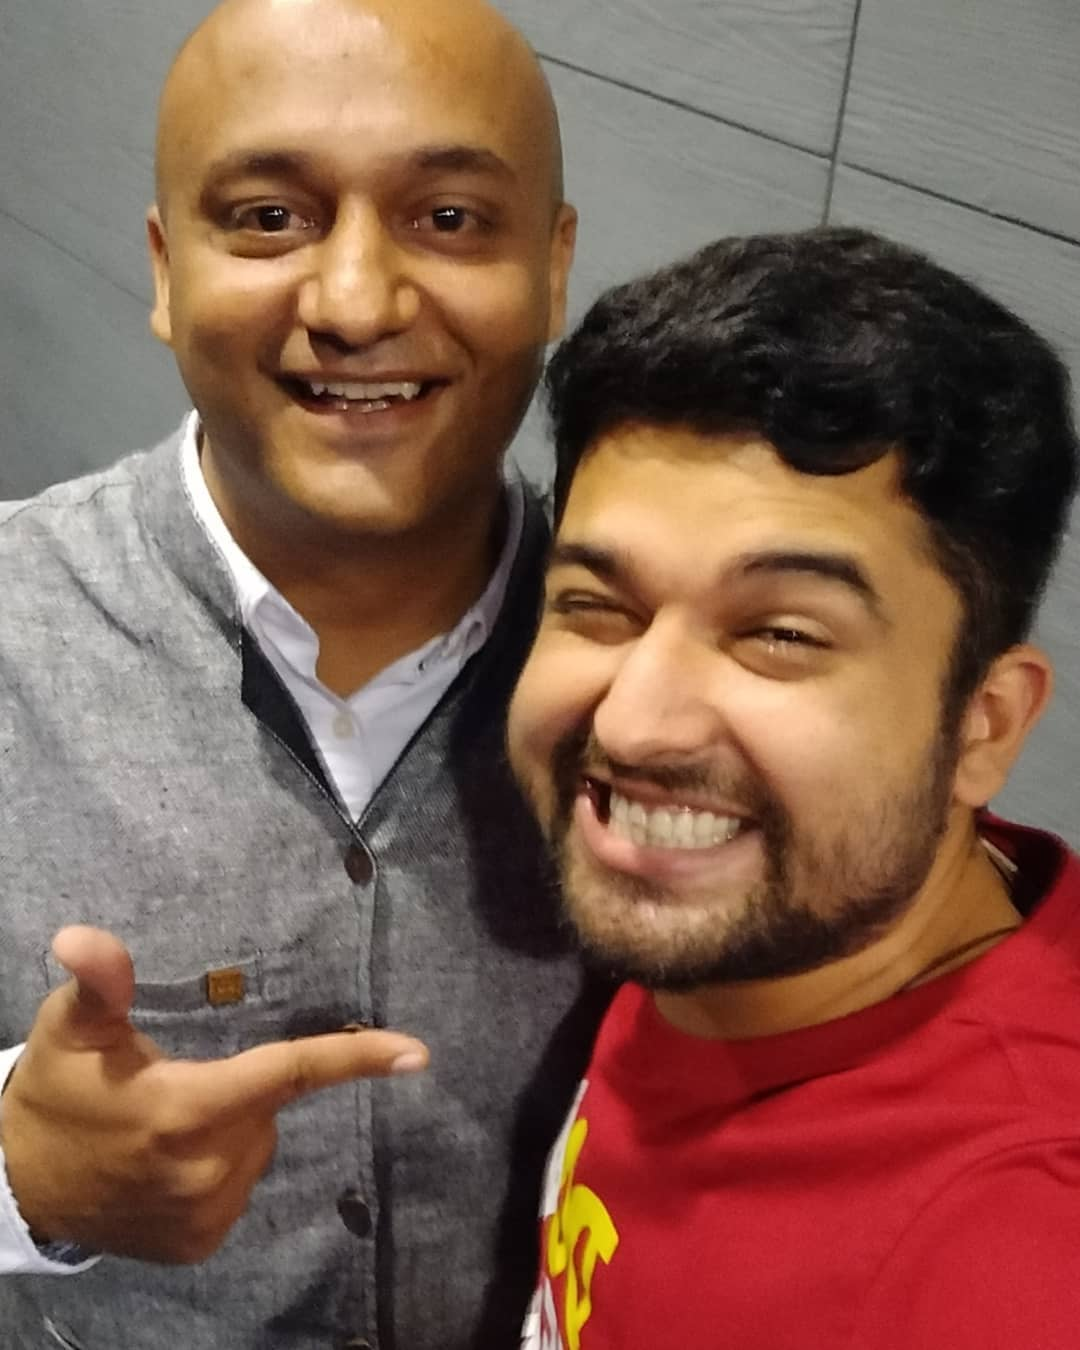 Yesterday Saw Vinay Sharma (@vinaycomedy ) perform live. He is hilarious and an amazing performer. Do follow him and checkout if he is coming to your city anytime in future. . . @om_funnyguynextdoor you did a great job as an opening act. #proudofyoubrother